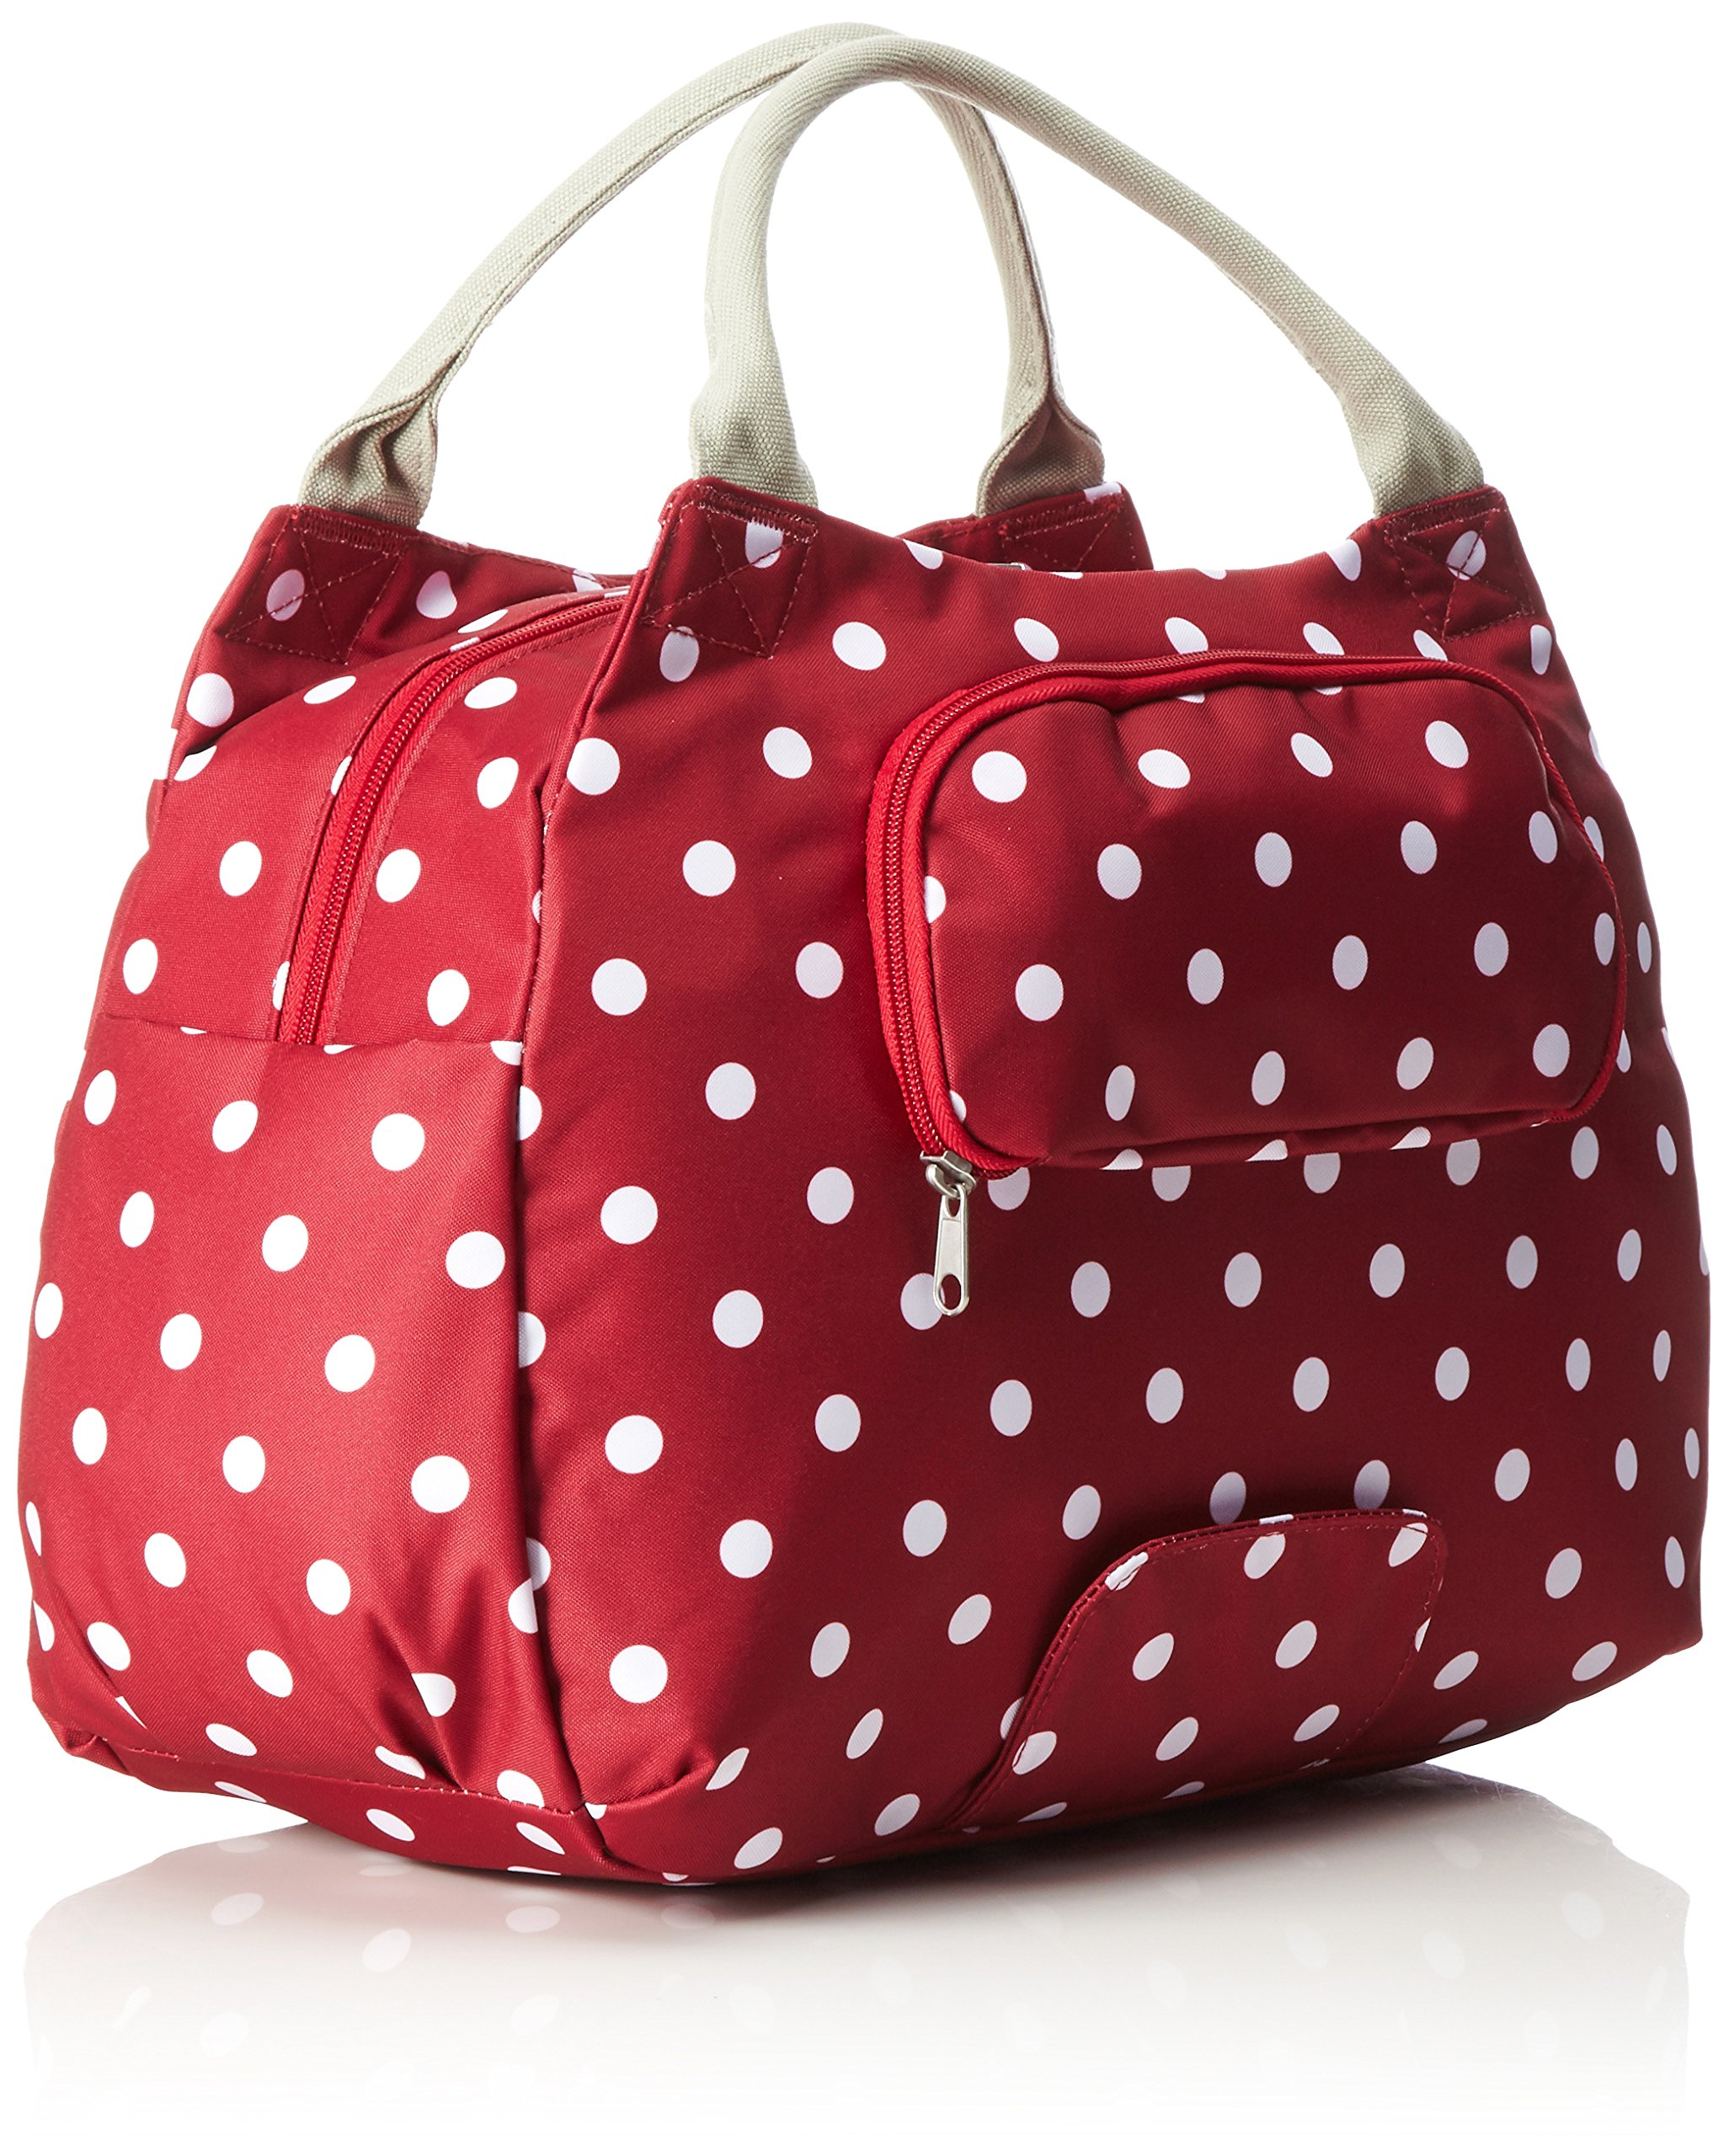 New Looxs Tosca handbag with polka dots, red [Sports] by New (Image #2)